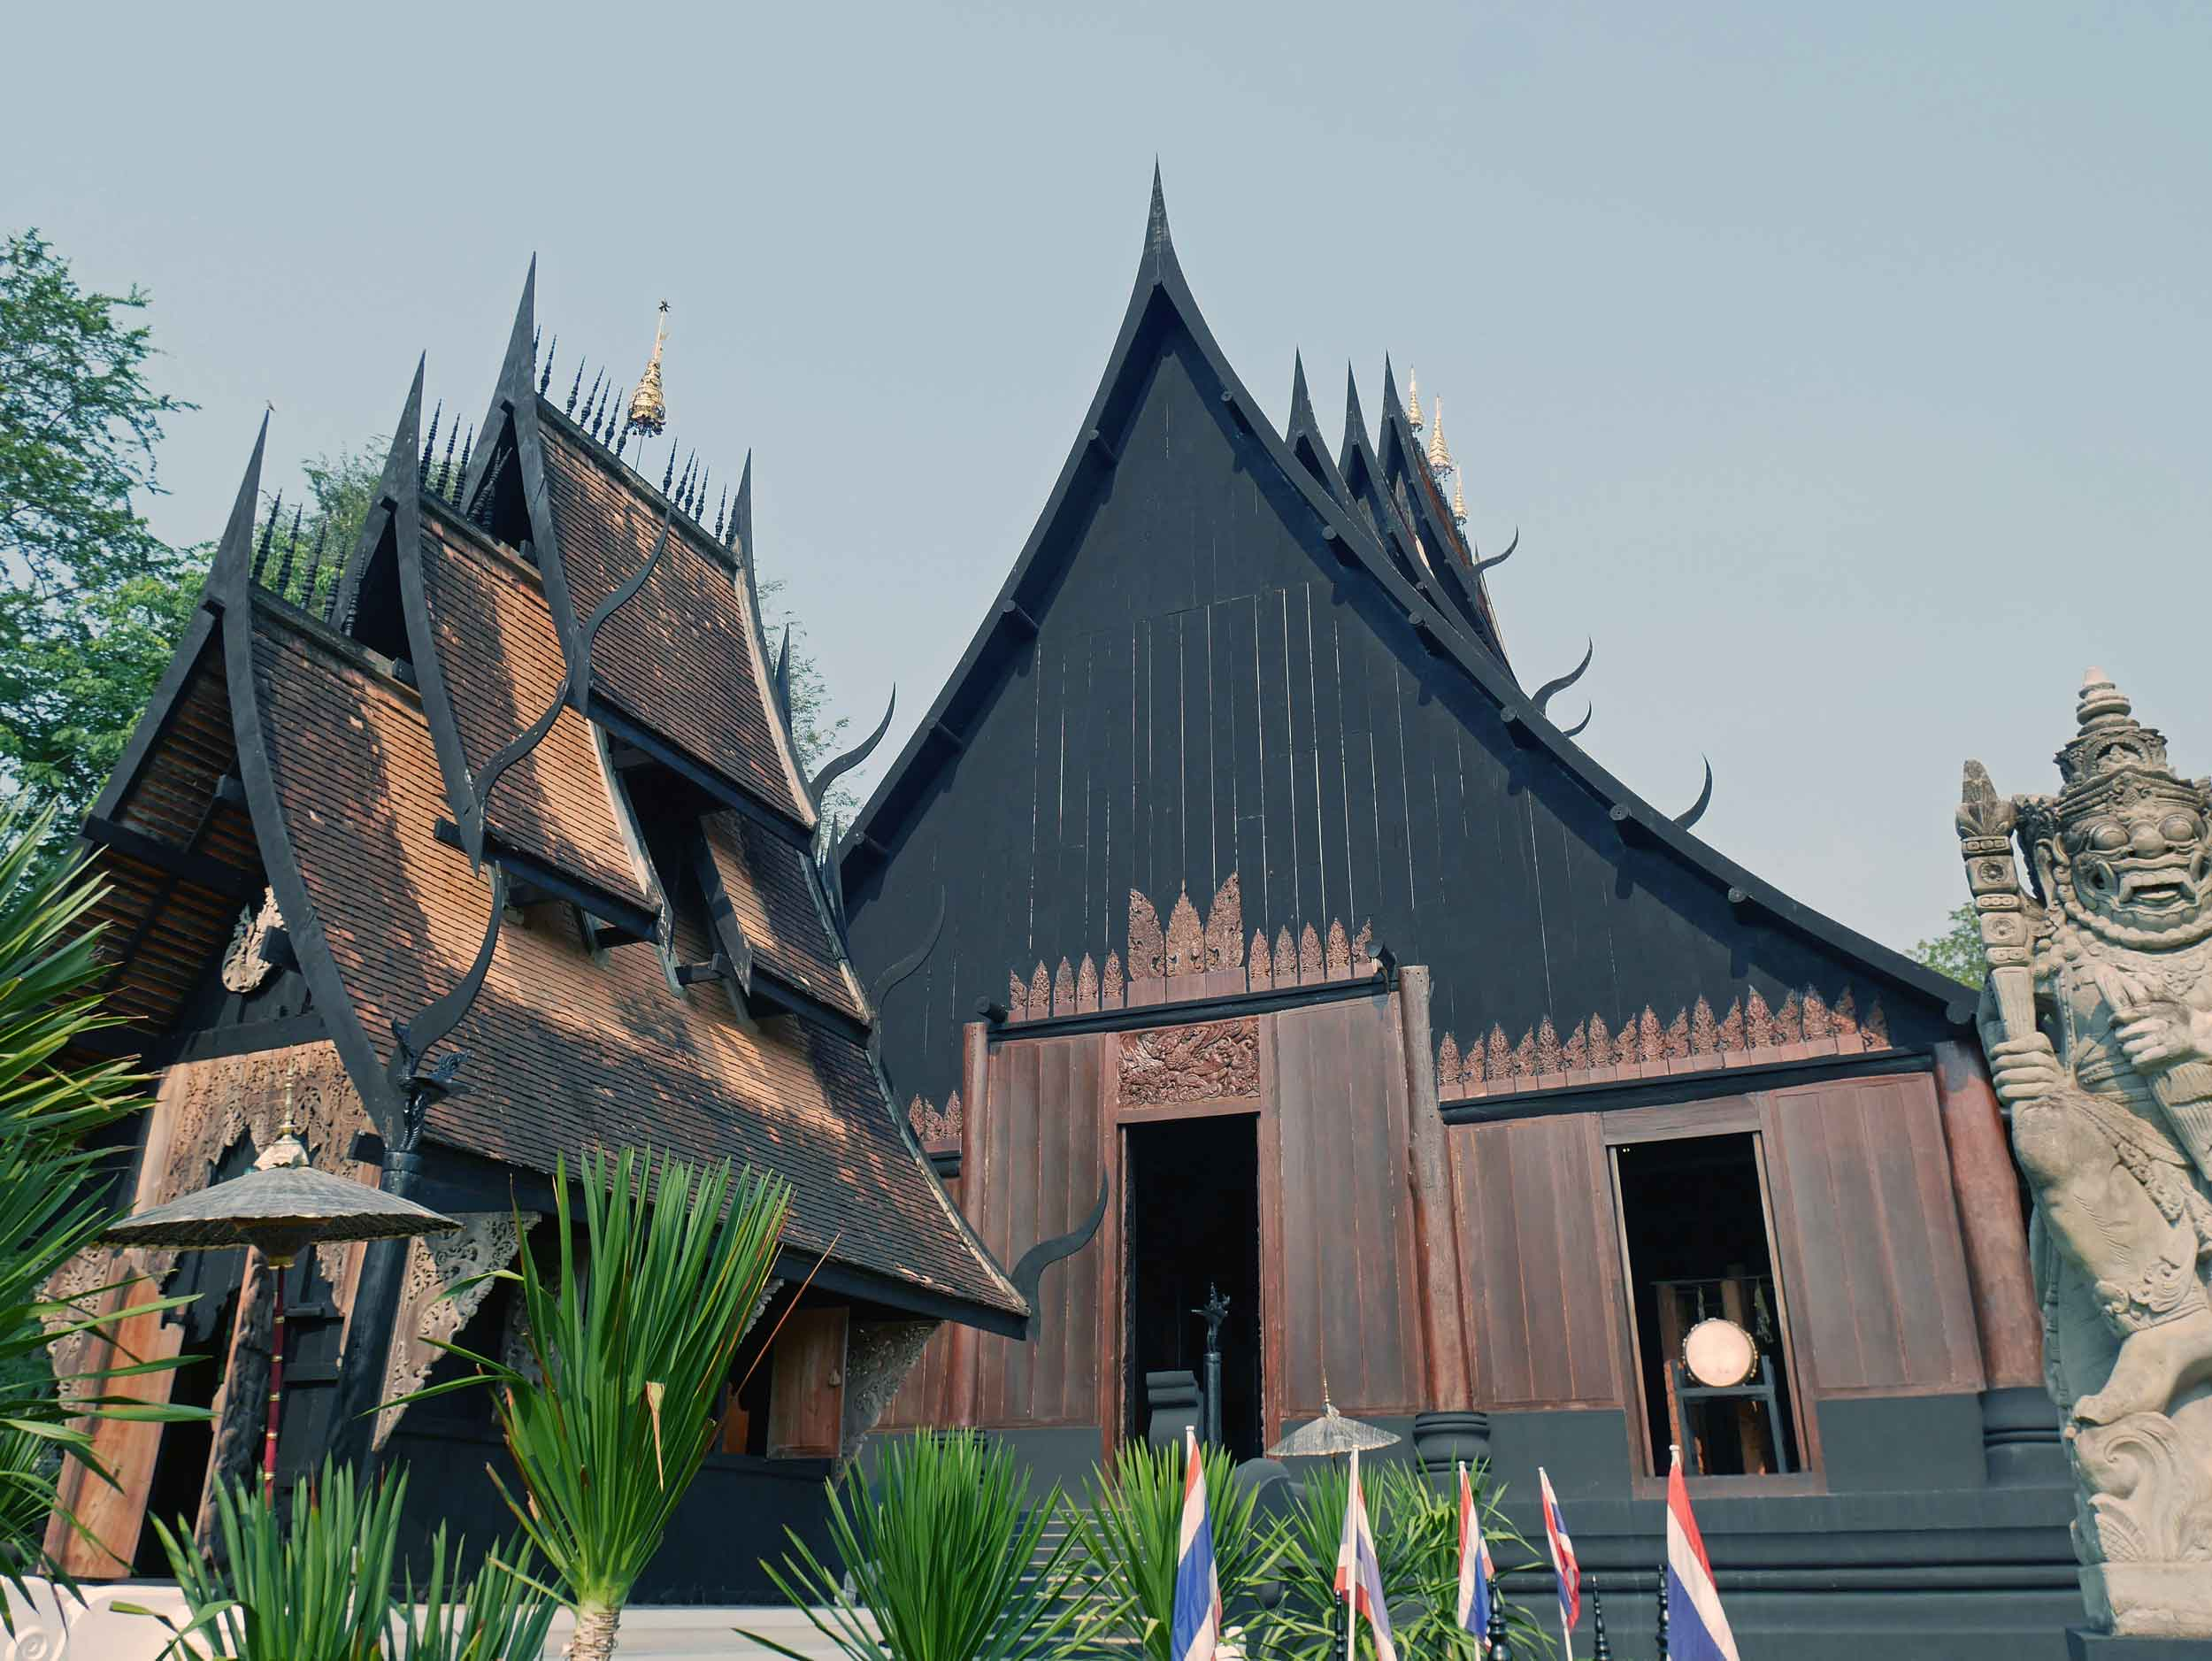 Entrance and main display building at Black House, or Baan Dam Museum, featuring the works of Thai national artist, Thawan Duchanee.